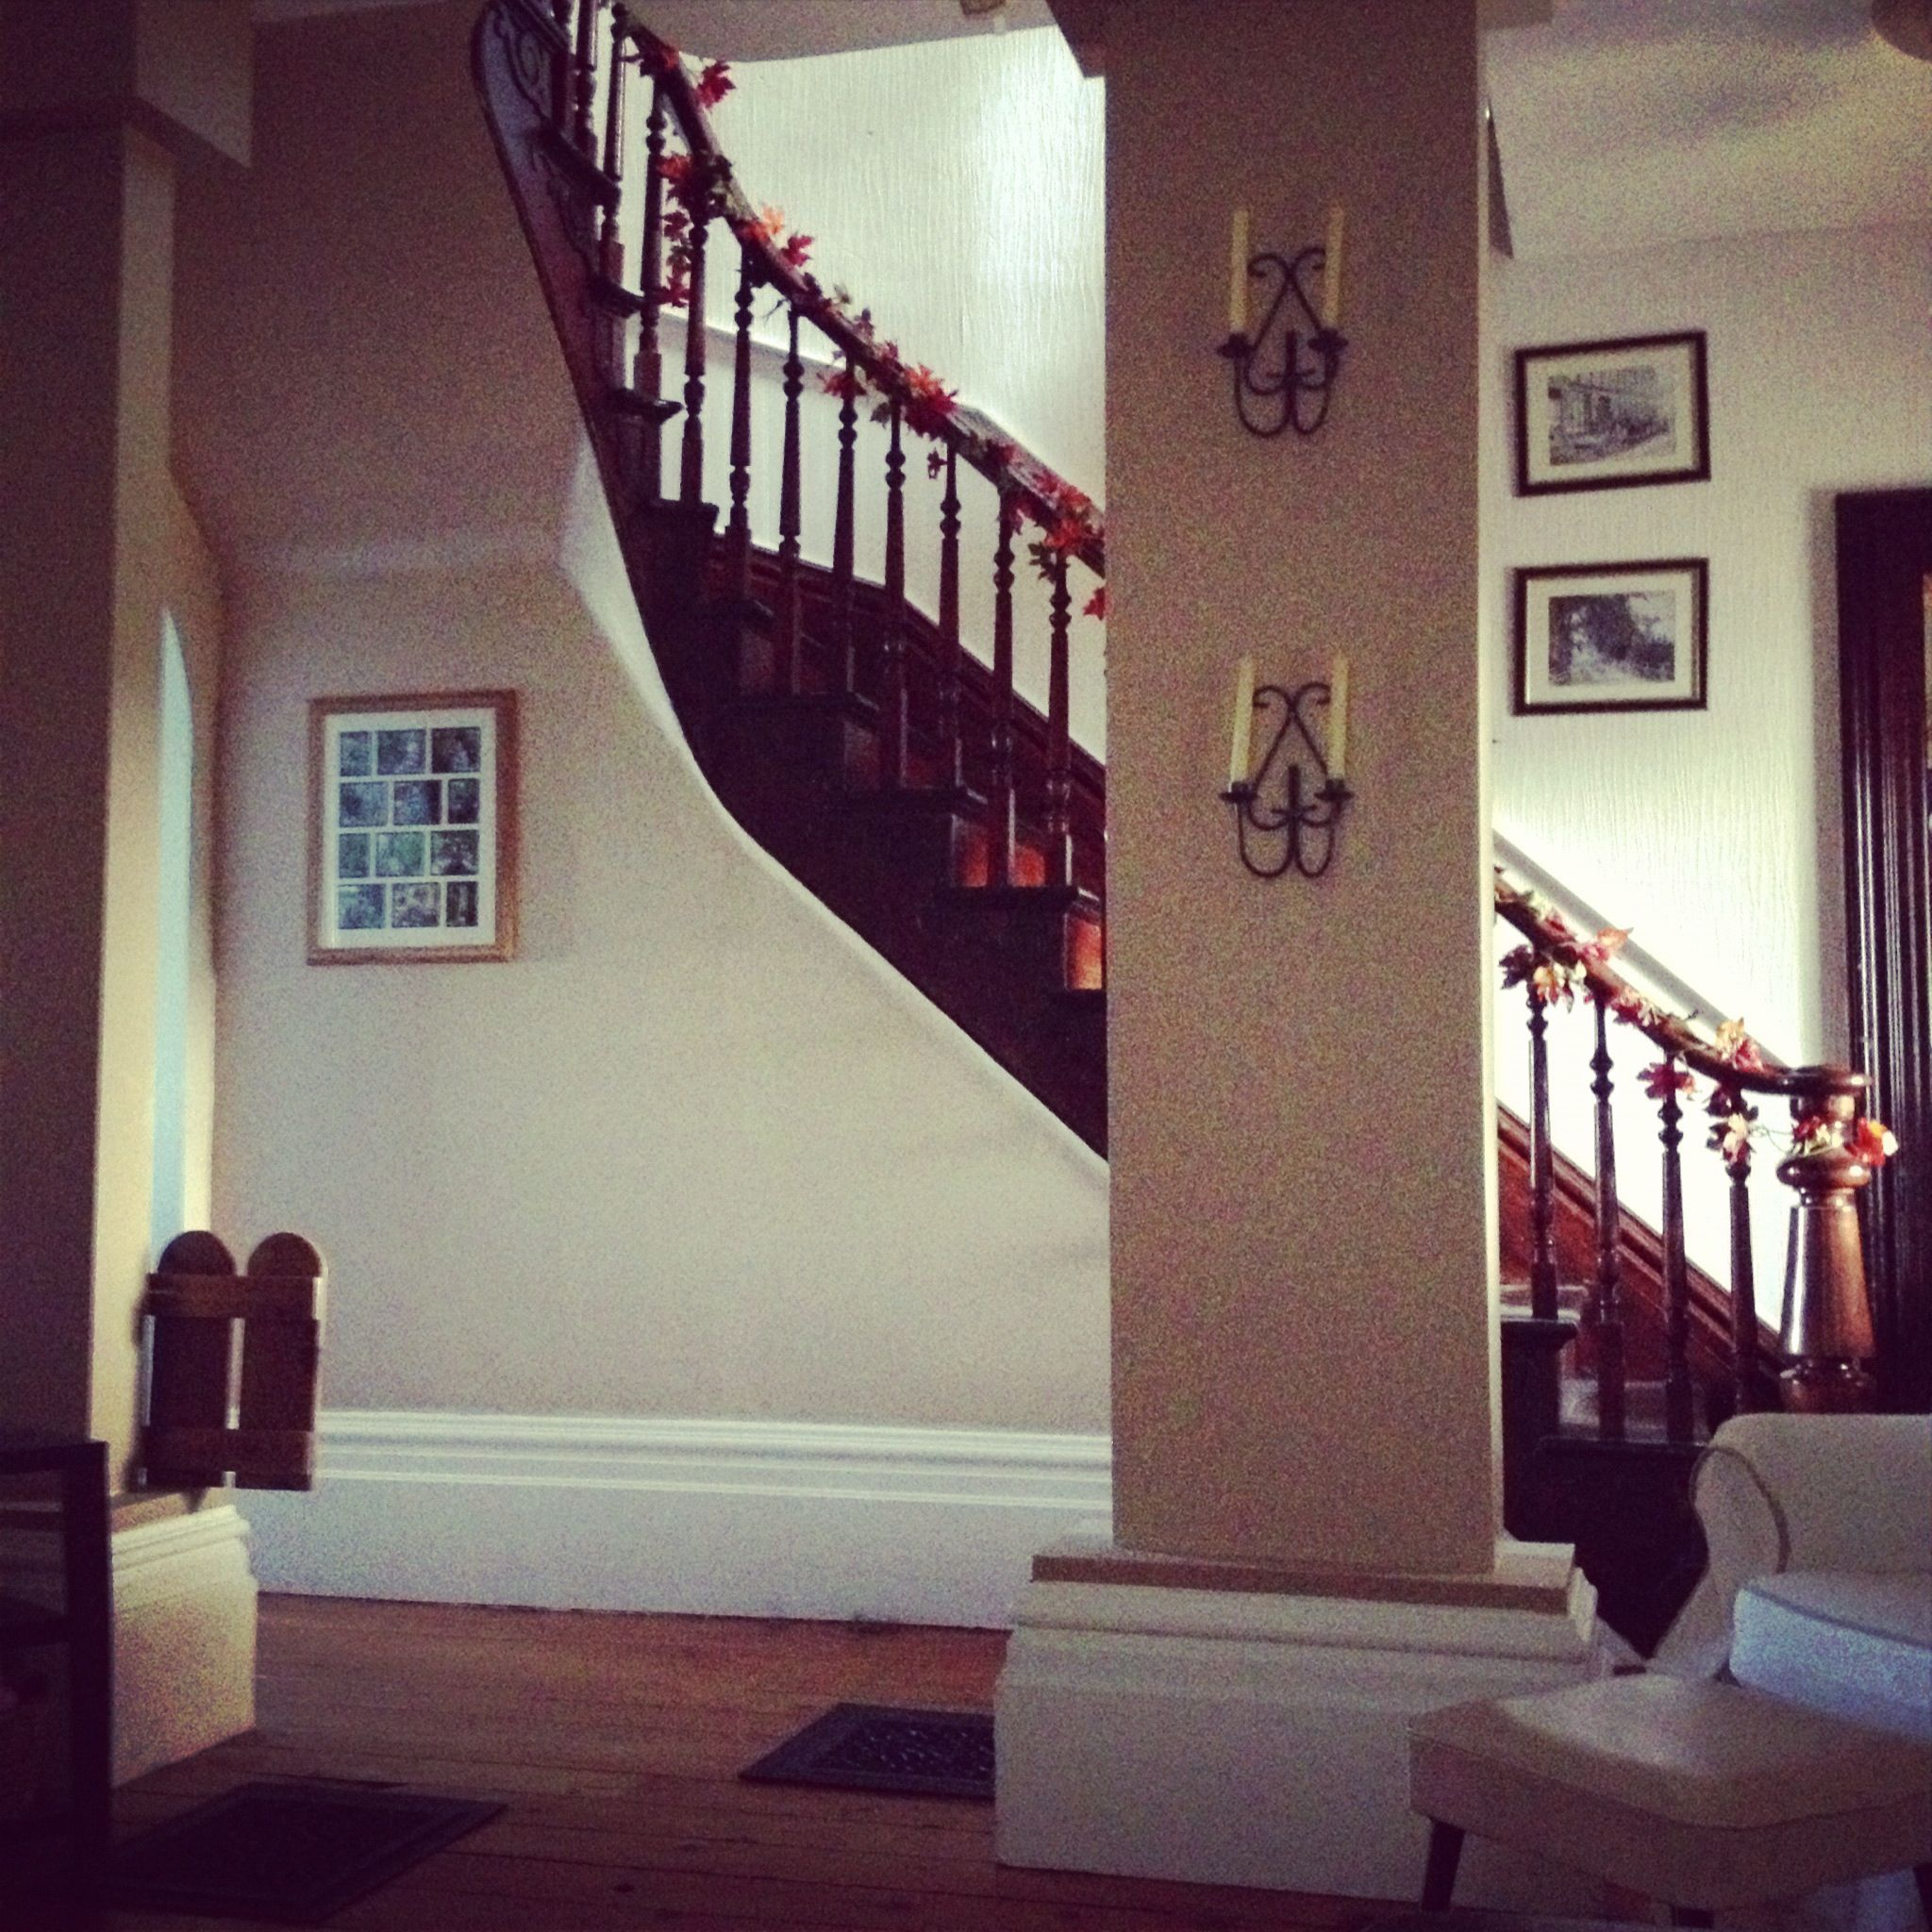 Stairs in the hall